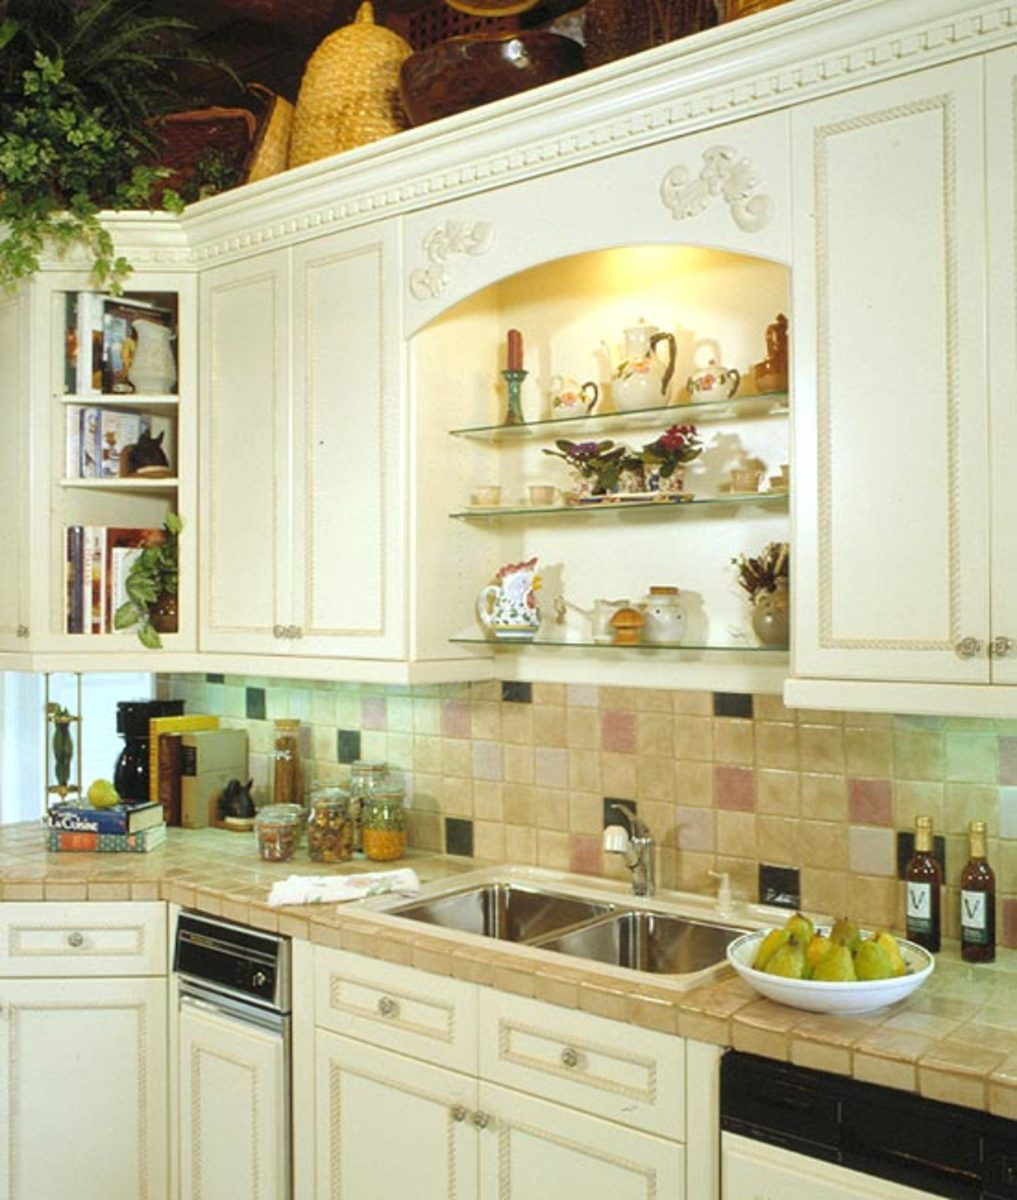 Home remodeling improvement idea alcoves hubpages for Kitchen designs without windows